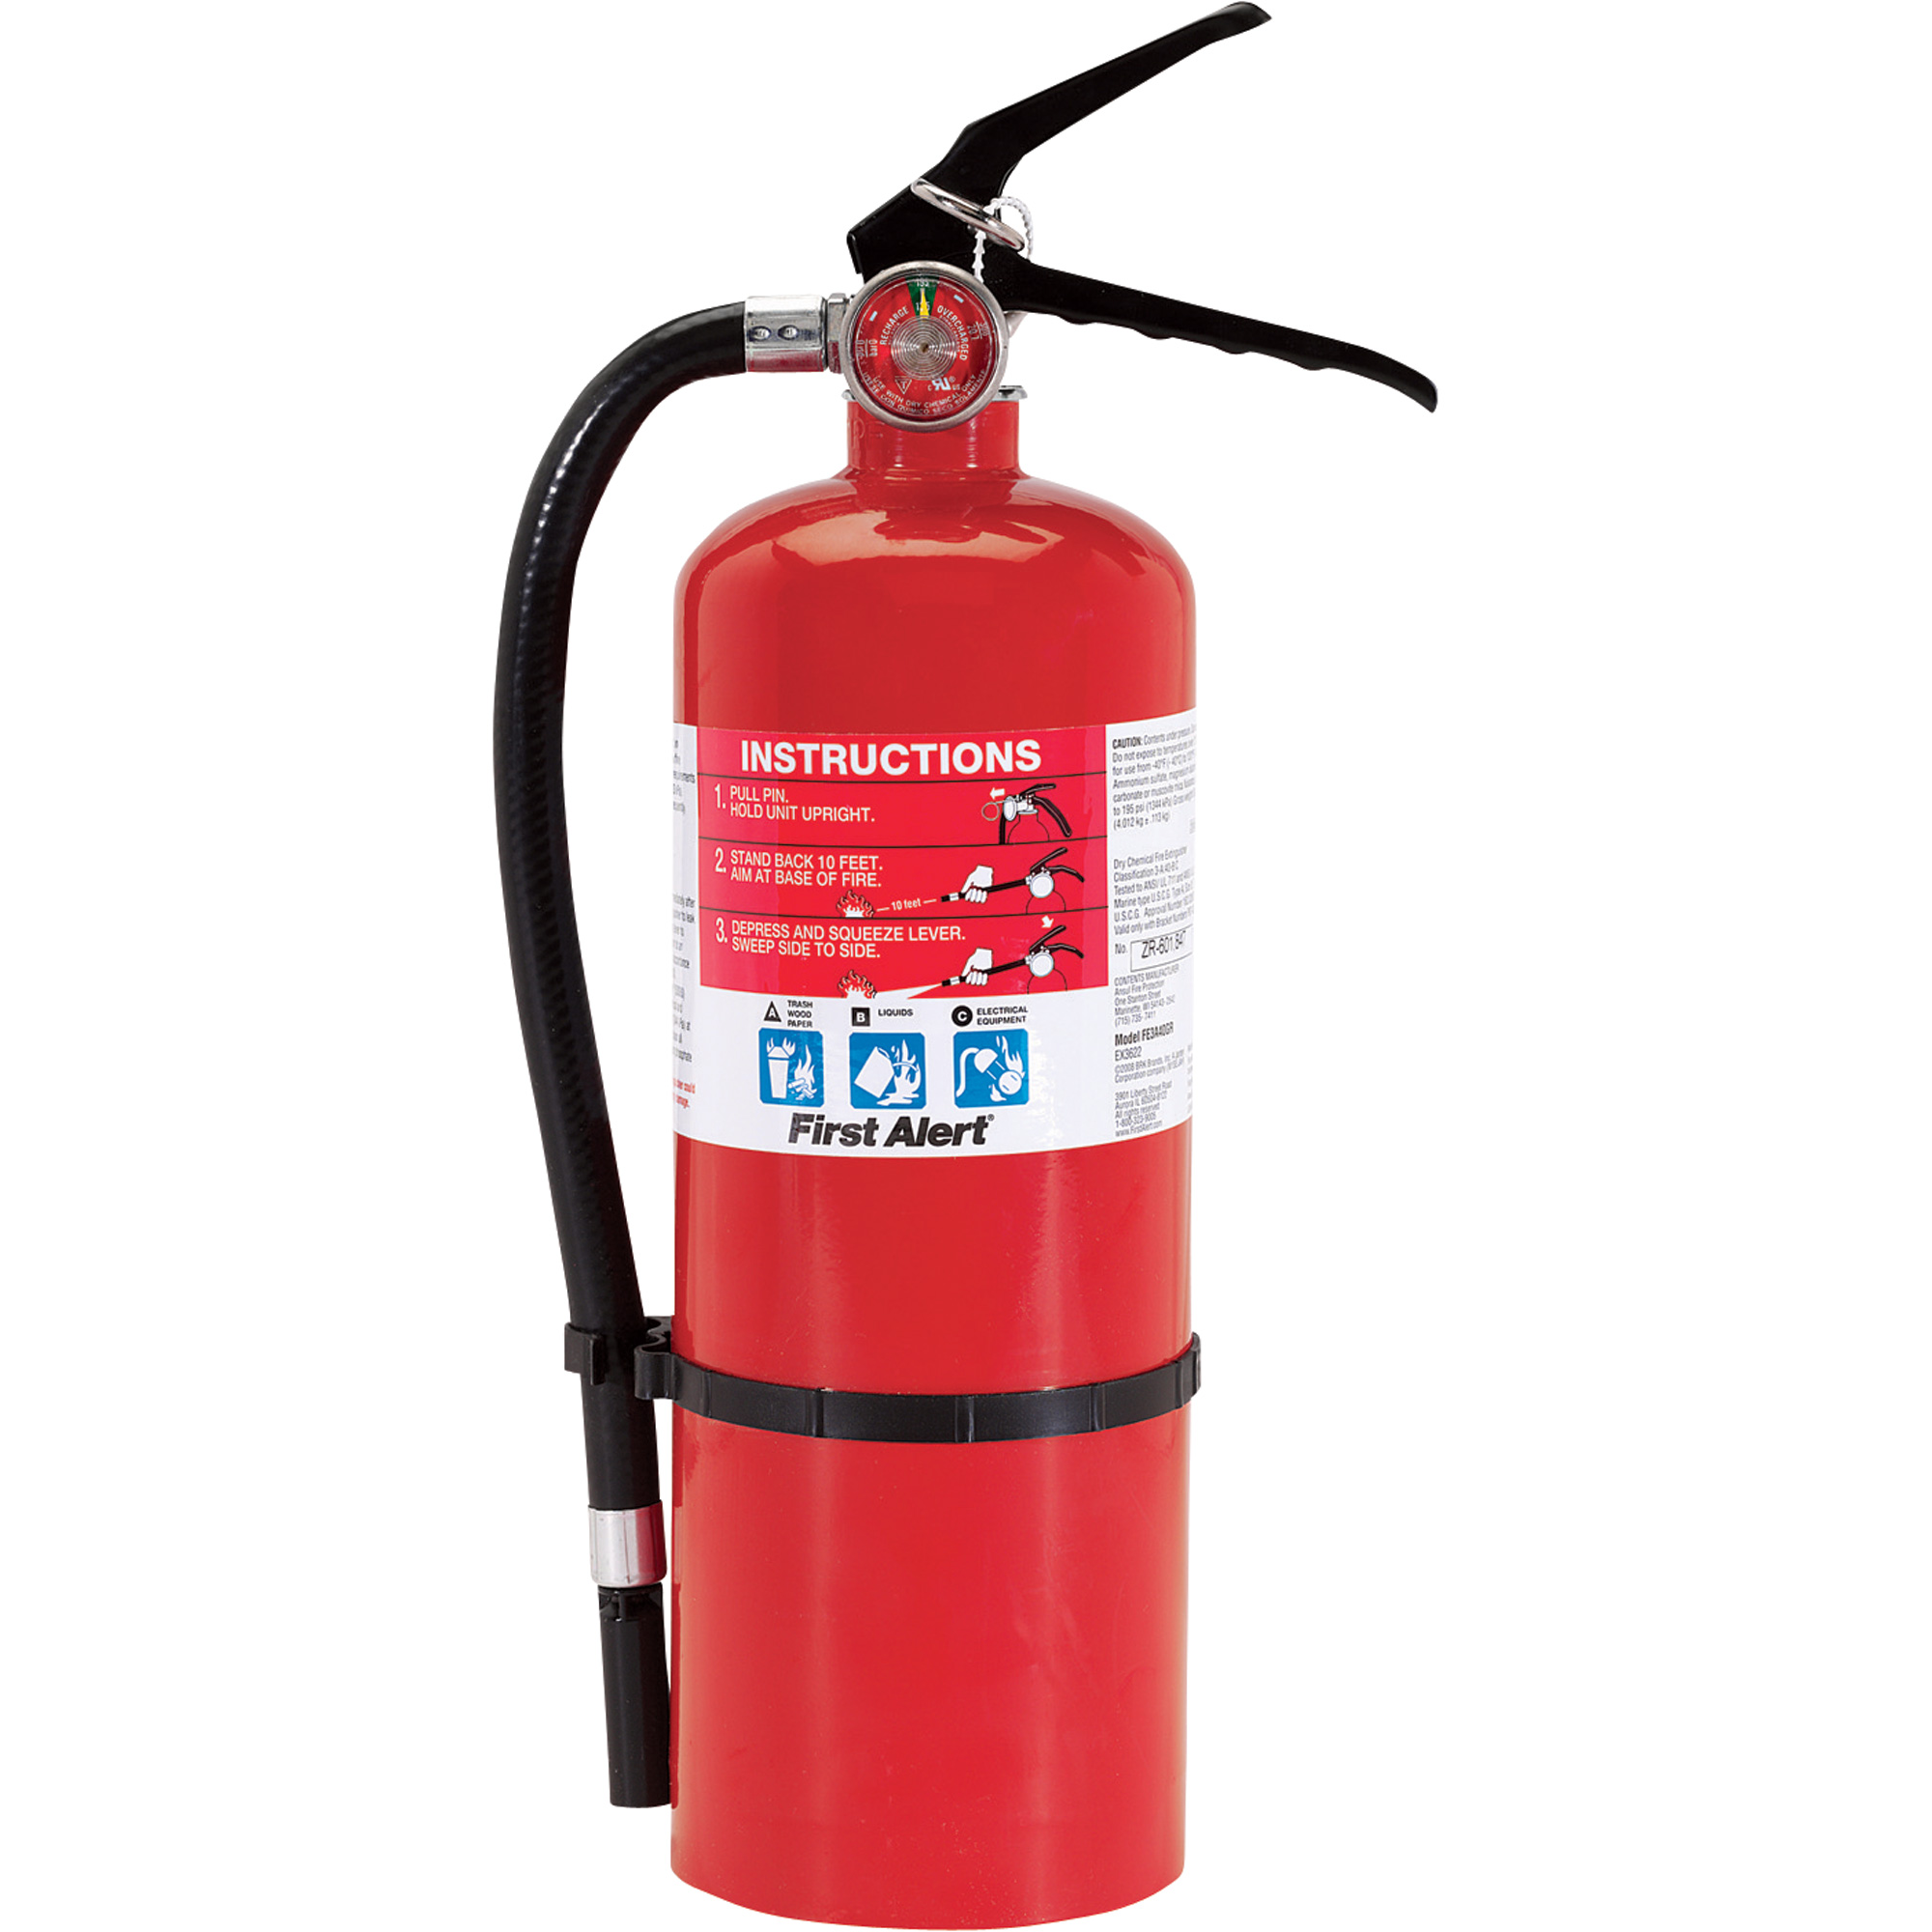 Fire Extinguisher Putting Out Fire | Clipart Panda - Free Clipart ...